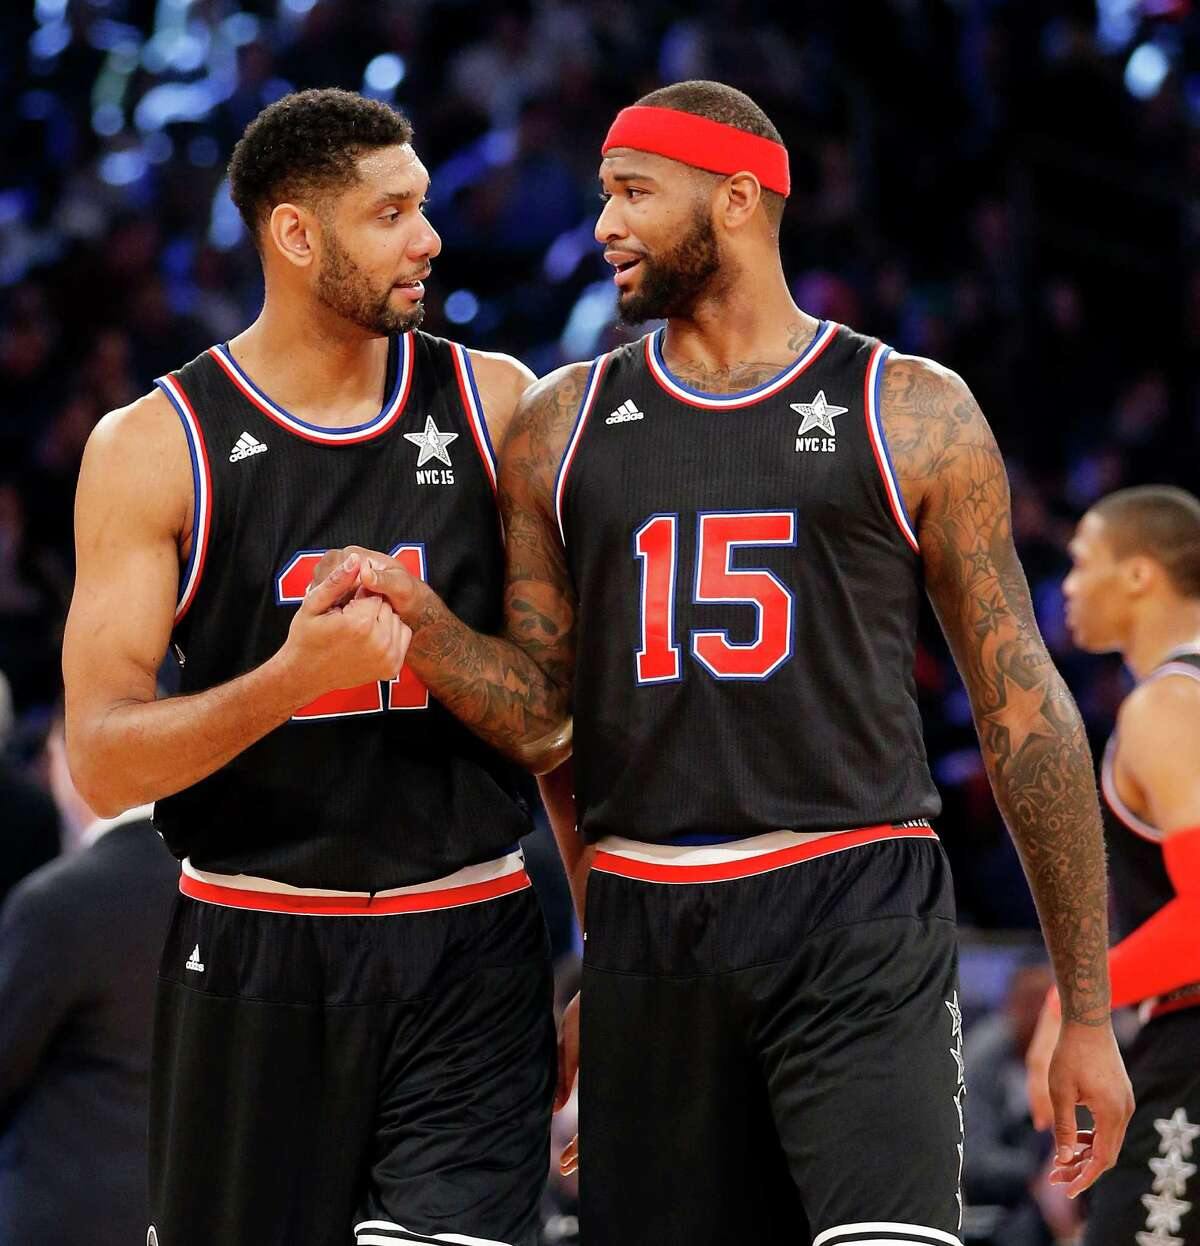 Spurs big man Tim Duncan, left, of the San Antonio Spurs, and DeMarcus Cousins, of the Sacramento Kings, talk during the second half.